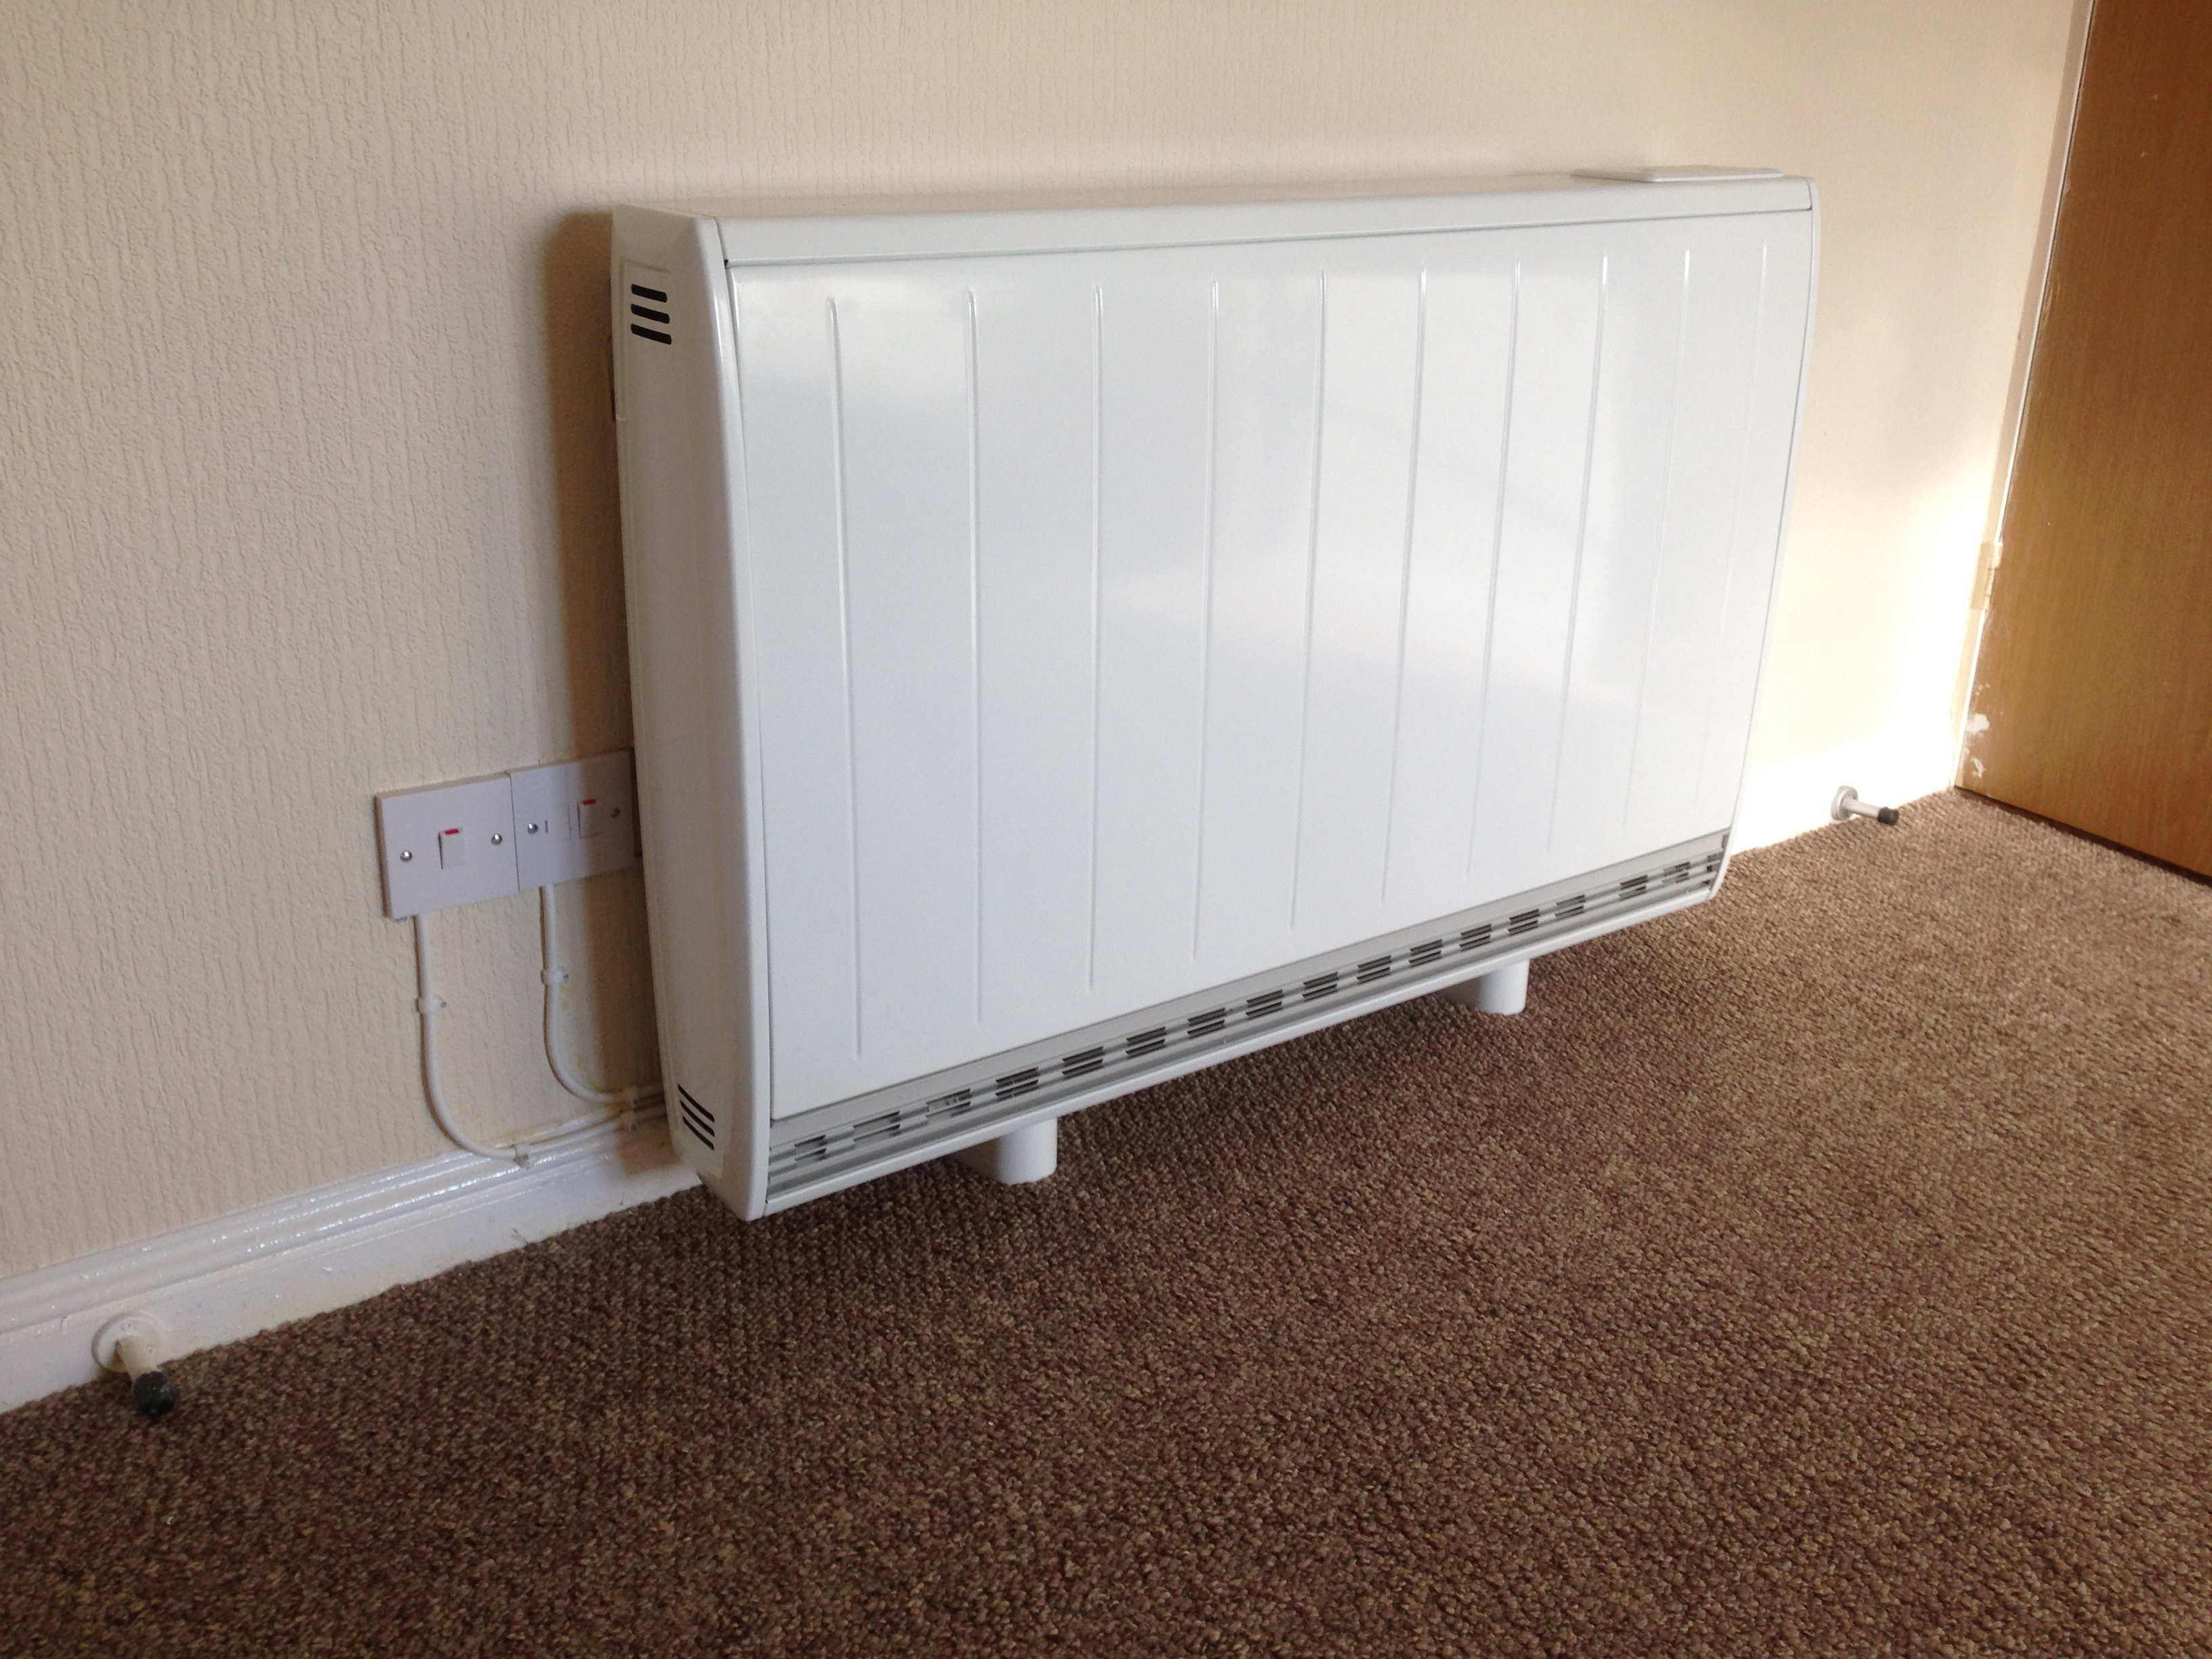 The Guinness Partnership Storage Heater Electrical